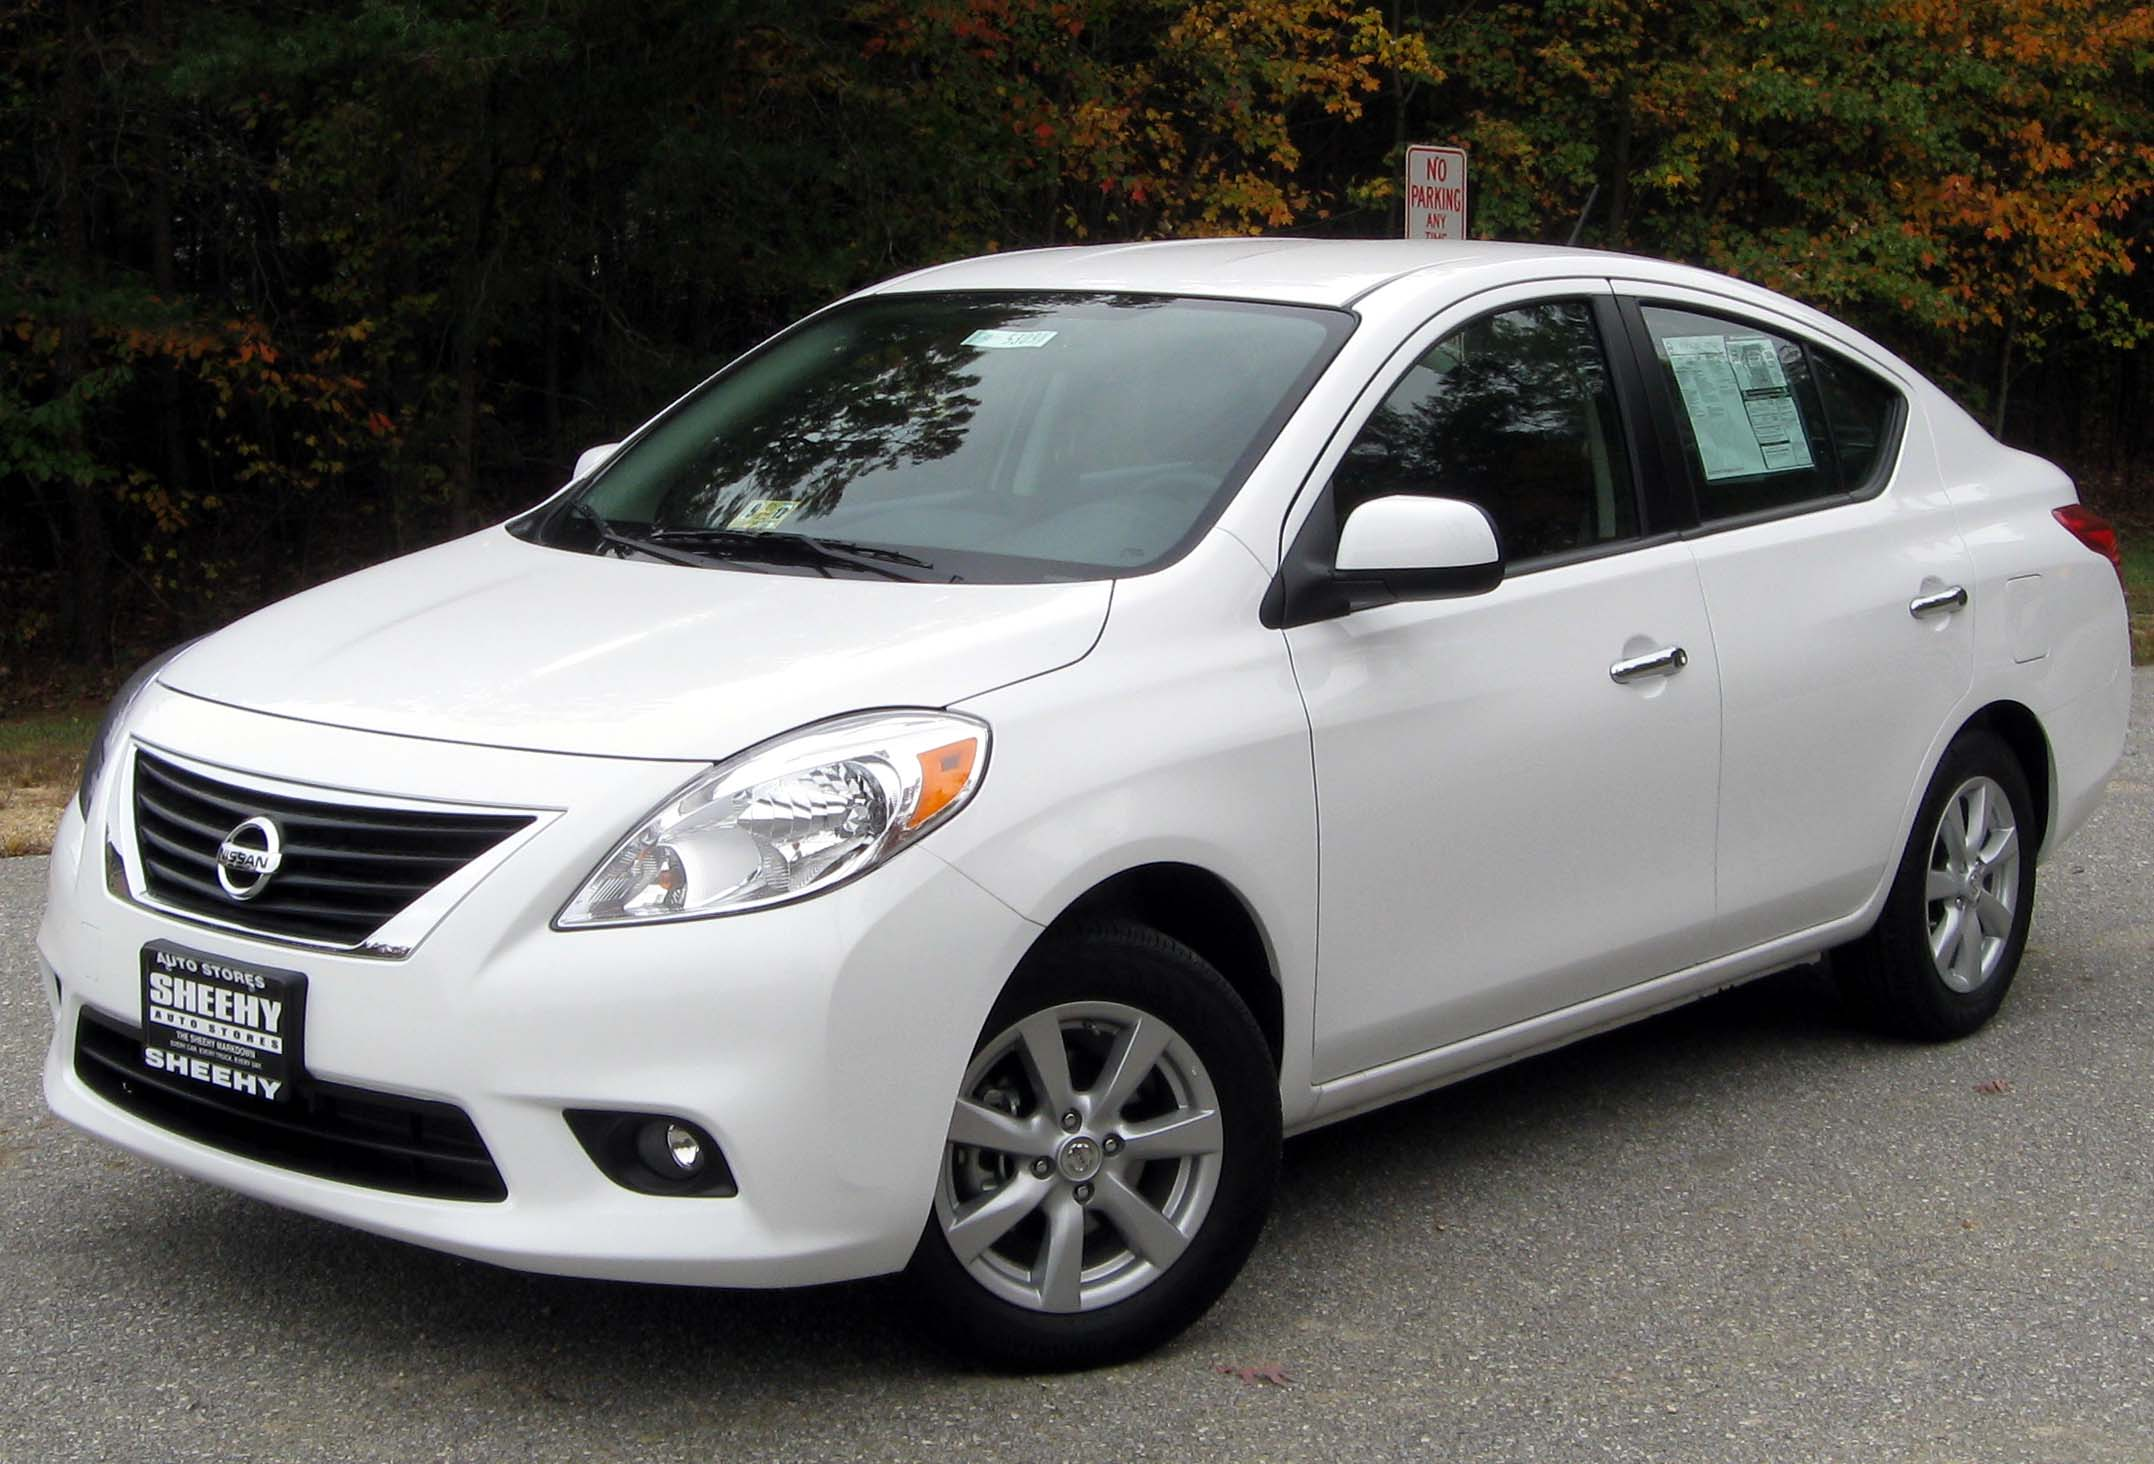 2013 nissan versa pictures information and specs auto. Black Bedroom Furniture Sets. Home Design Ideas